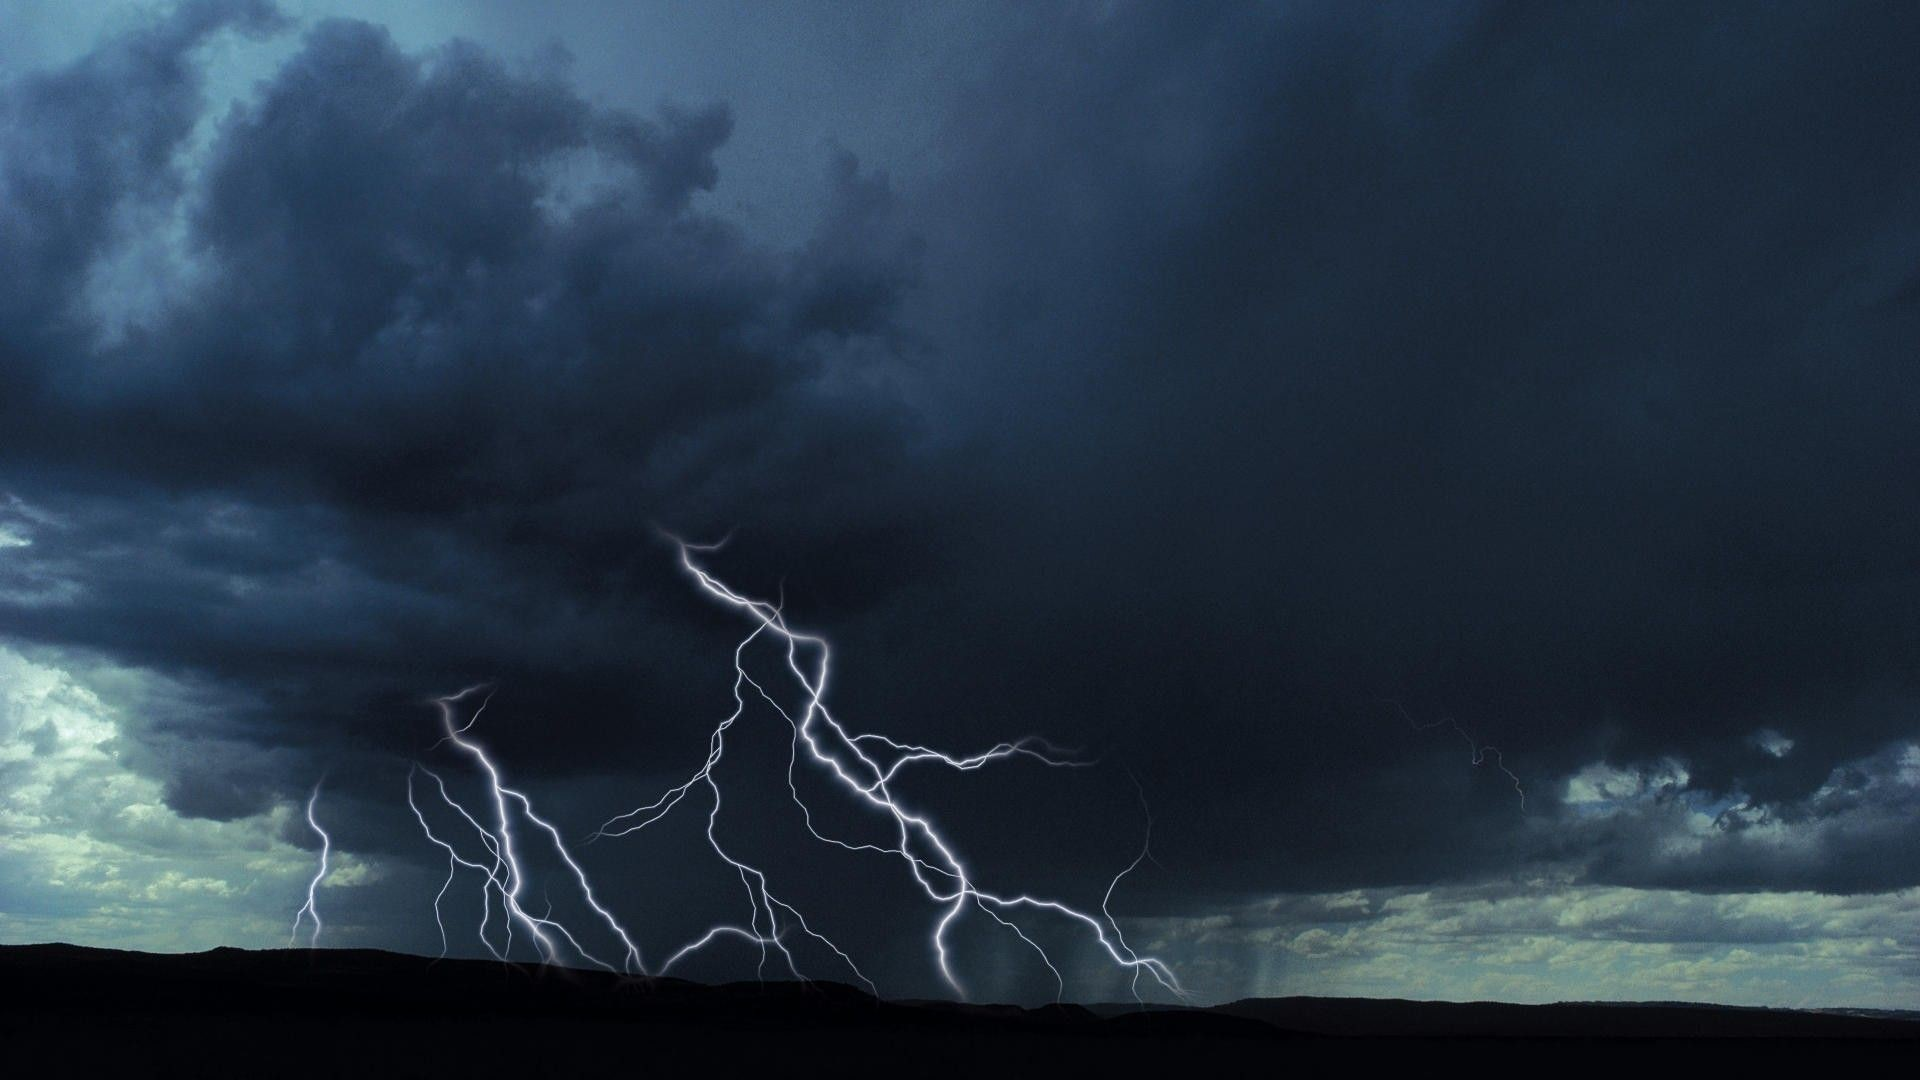 Res: 1920x1080, Lightning Strike Wallpapers Awesome Thunderstorm Wallpaper X Wallpapers  Pinterest Of Lightning Strike Wallpapers Awesome Thunderstorm Wallpaper